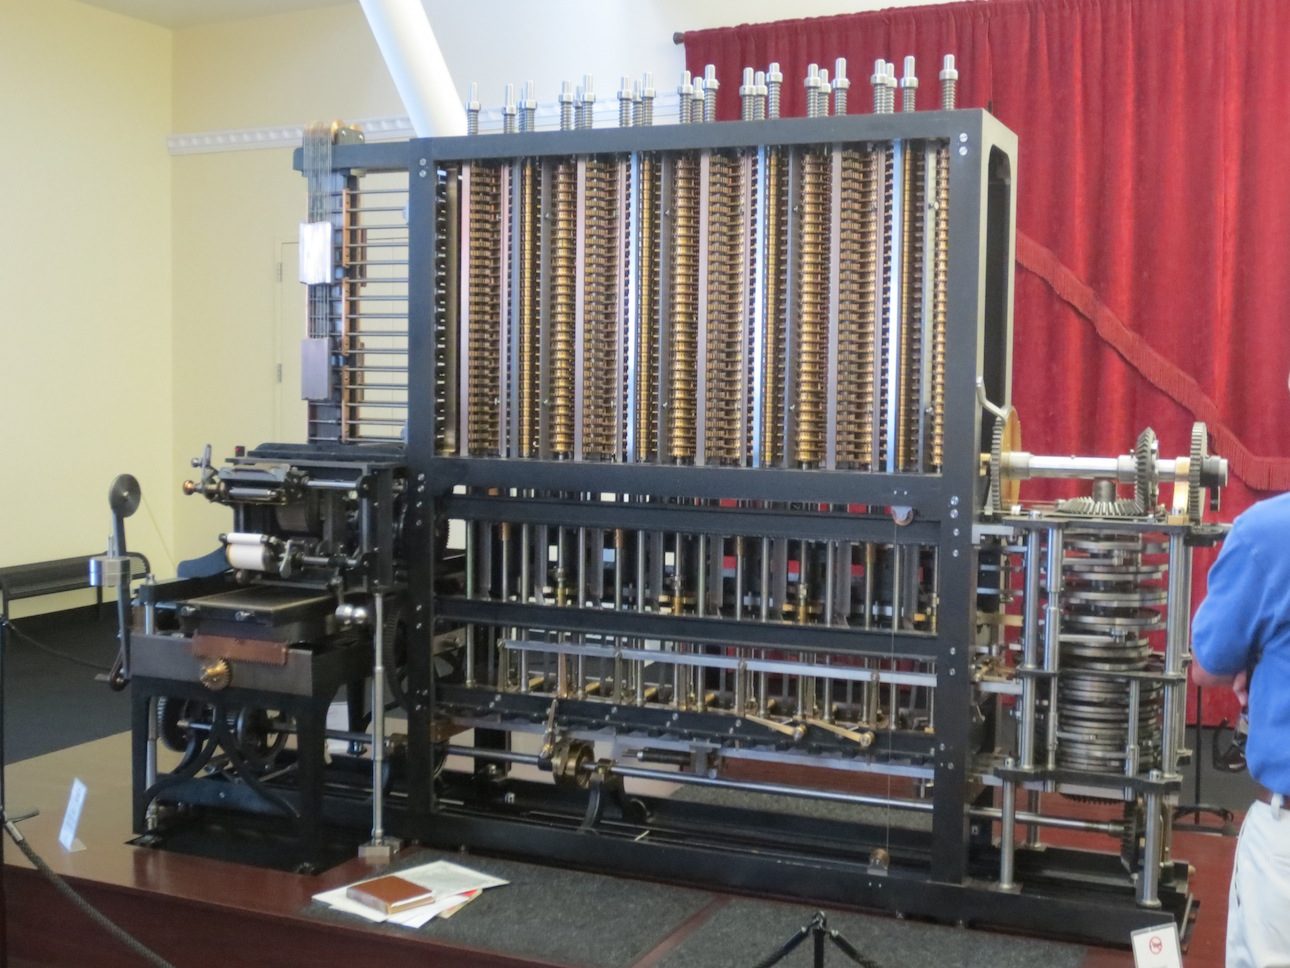 Working model of Charles Babbage's Difference Engine.